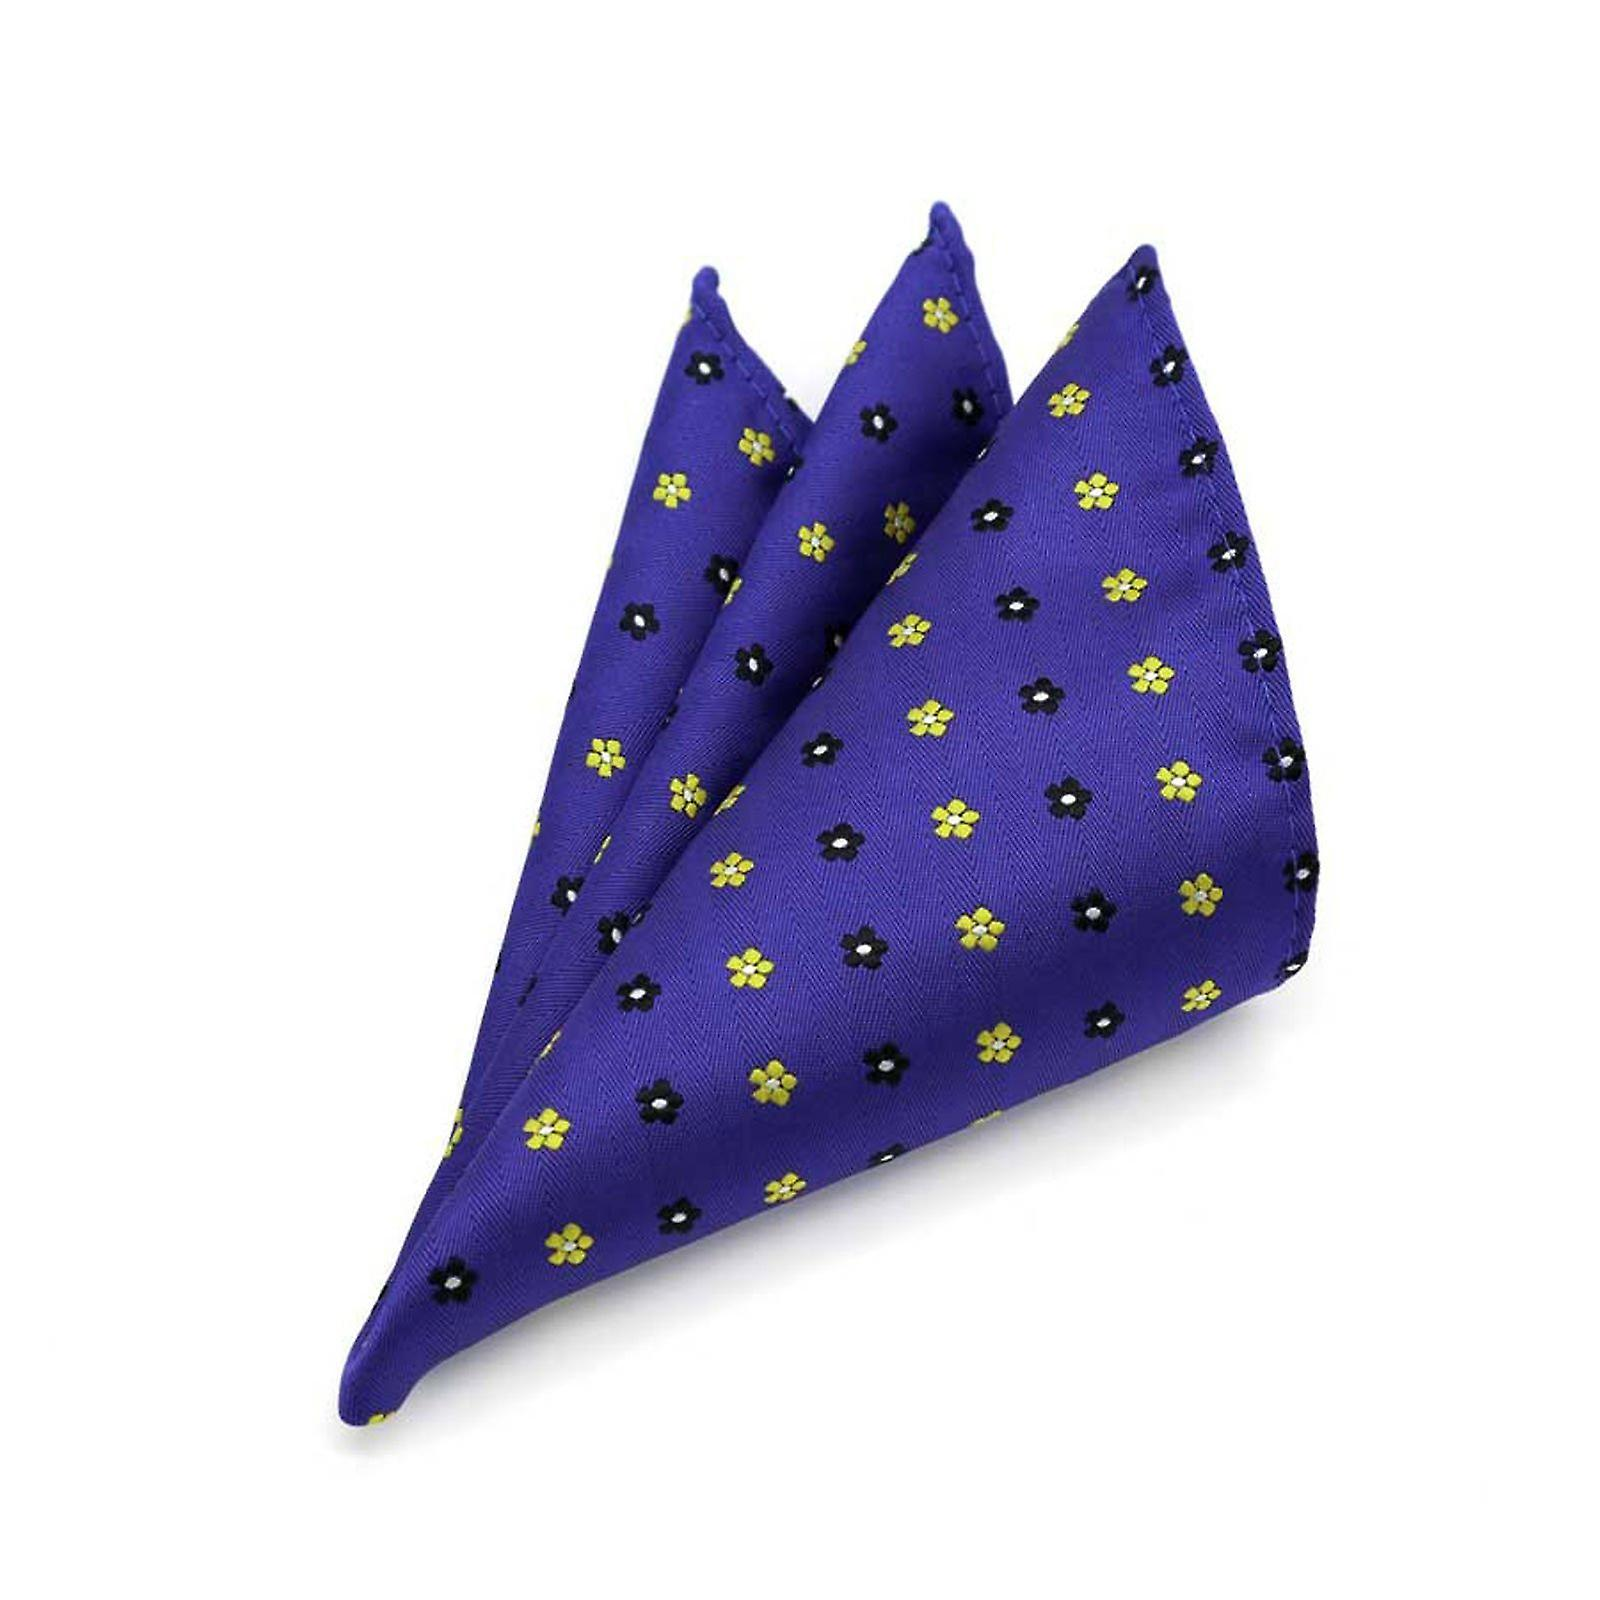 Midnight blue & yellow ditsy floral mens' pocket square